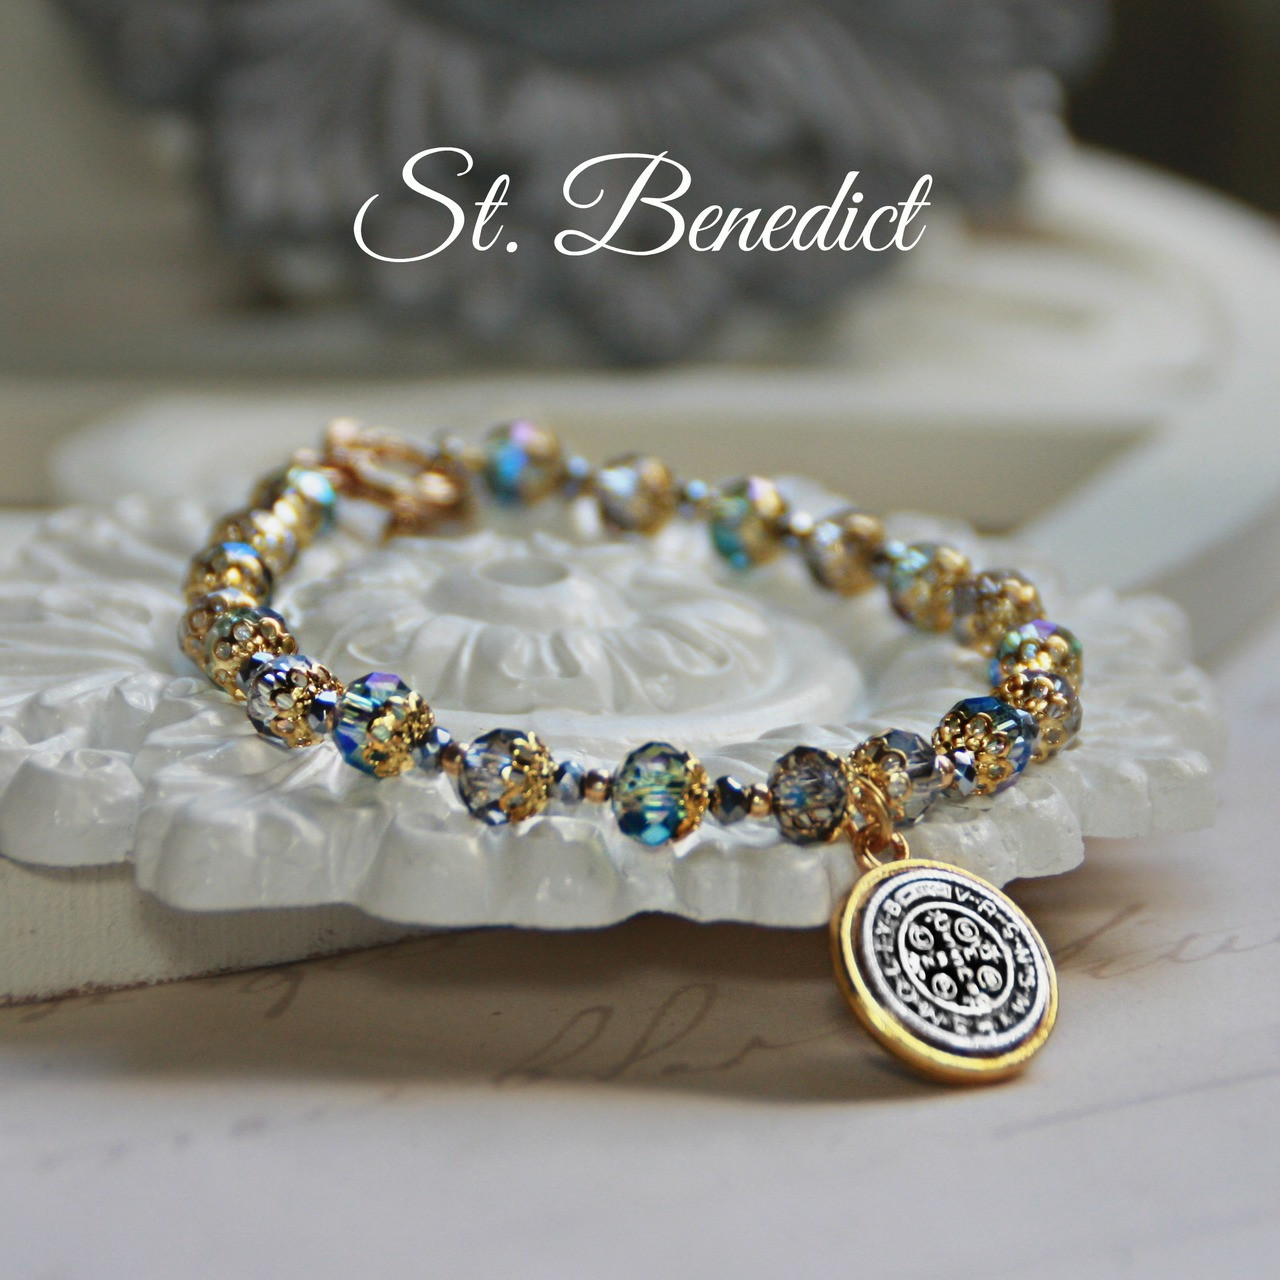 IN-203  Stunning New St. Benedict Bracelet for Everyone!